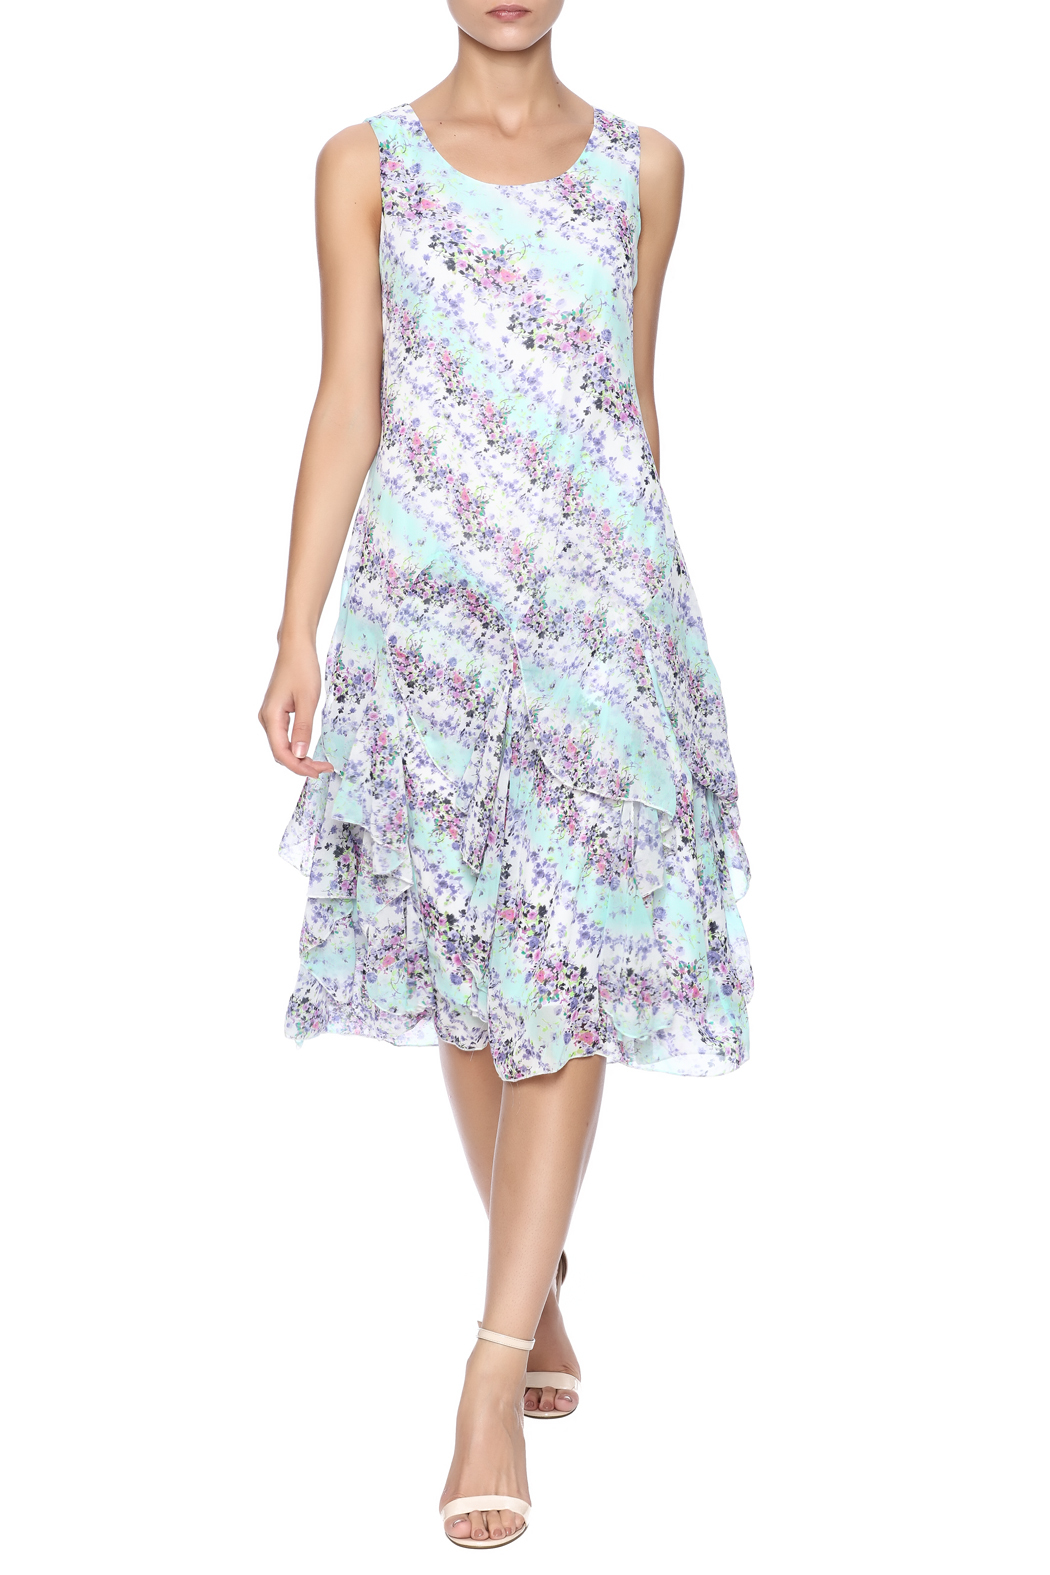 Nina Leonard Two Piece Floral Dress - Main Image